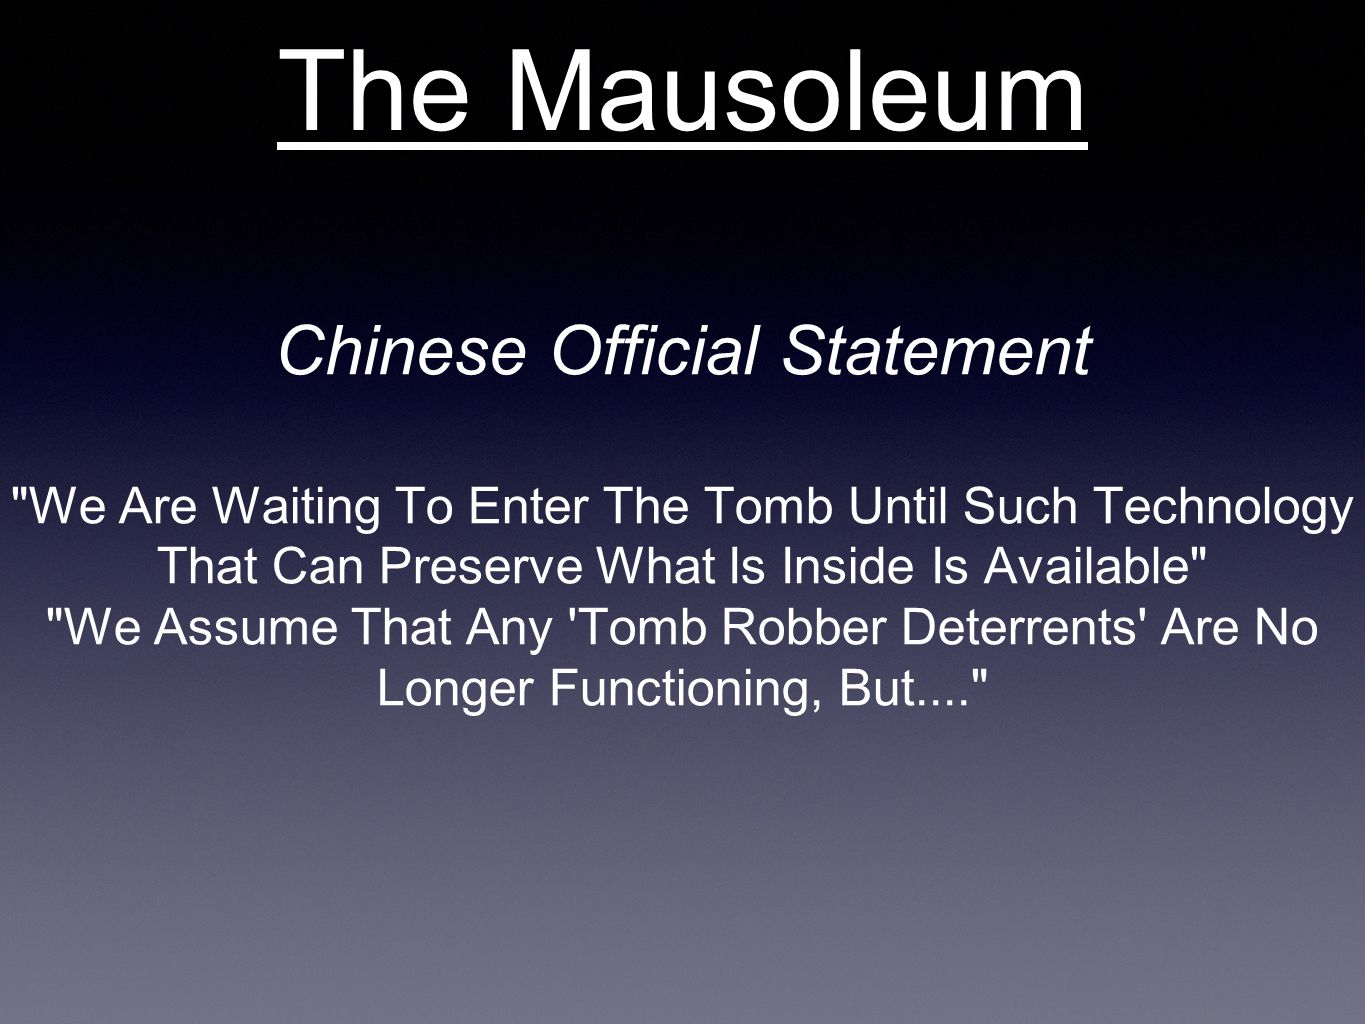 The Mausoleum Chinese Official Statement